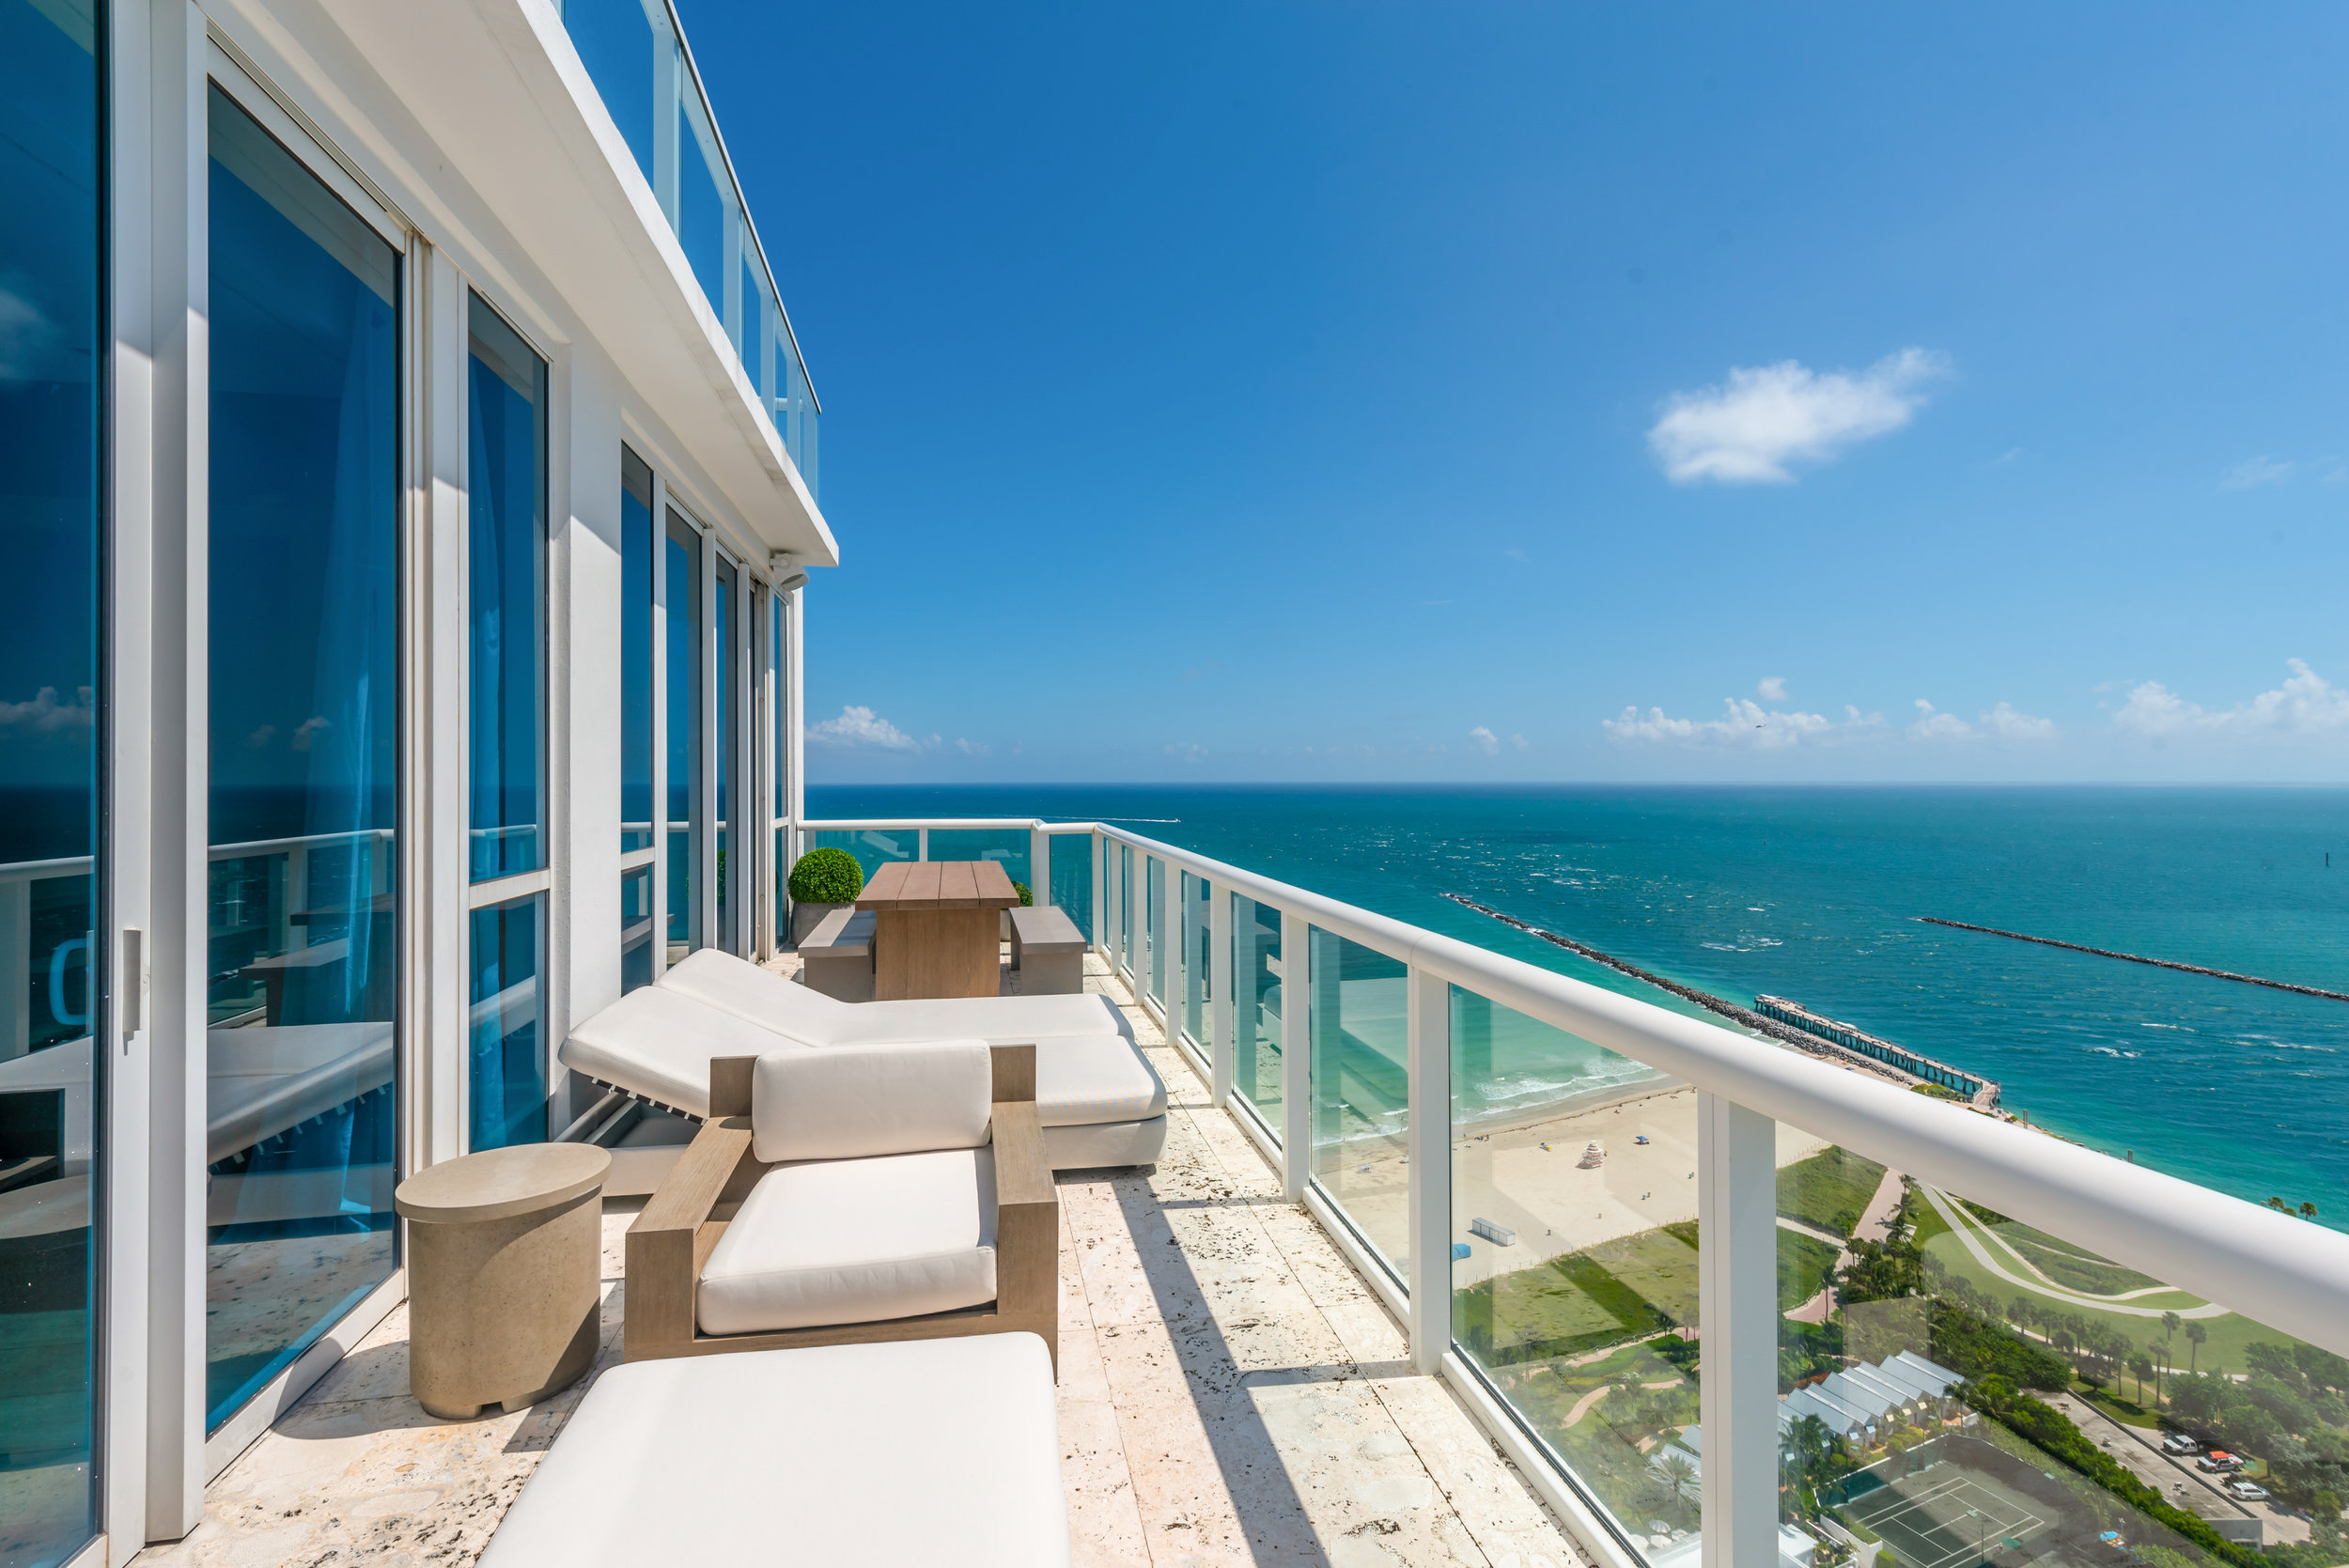 50 S Pointe Drive, 3502, Continuum South Beach, Miami Beach